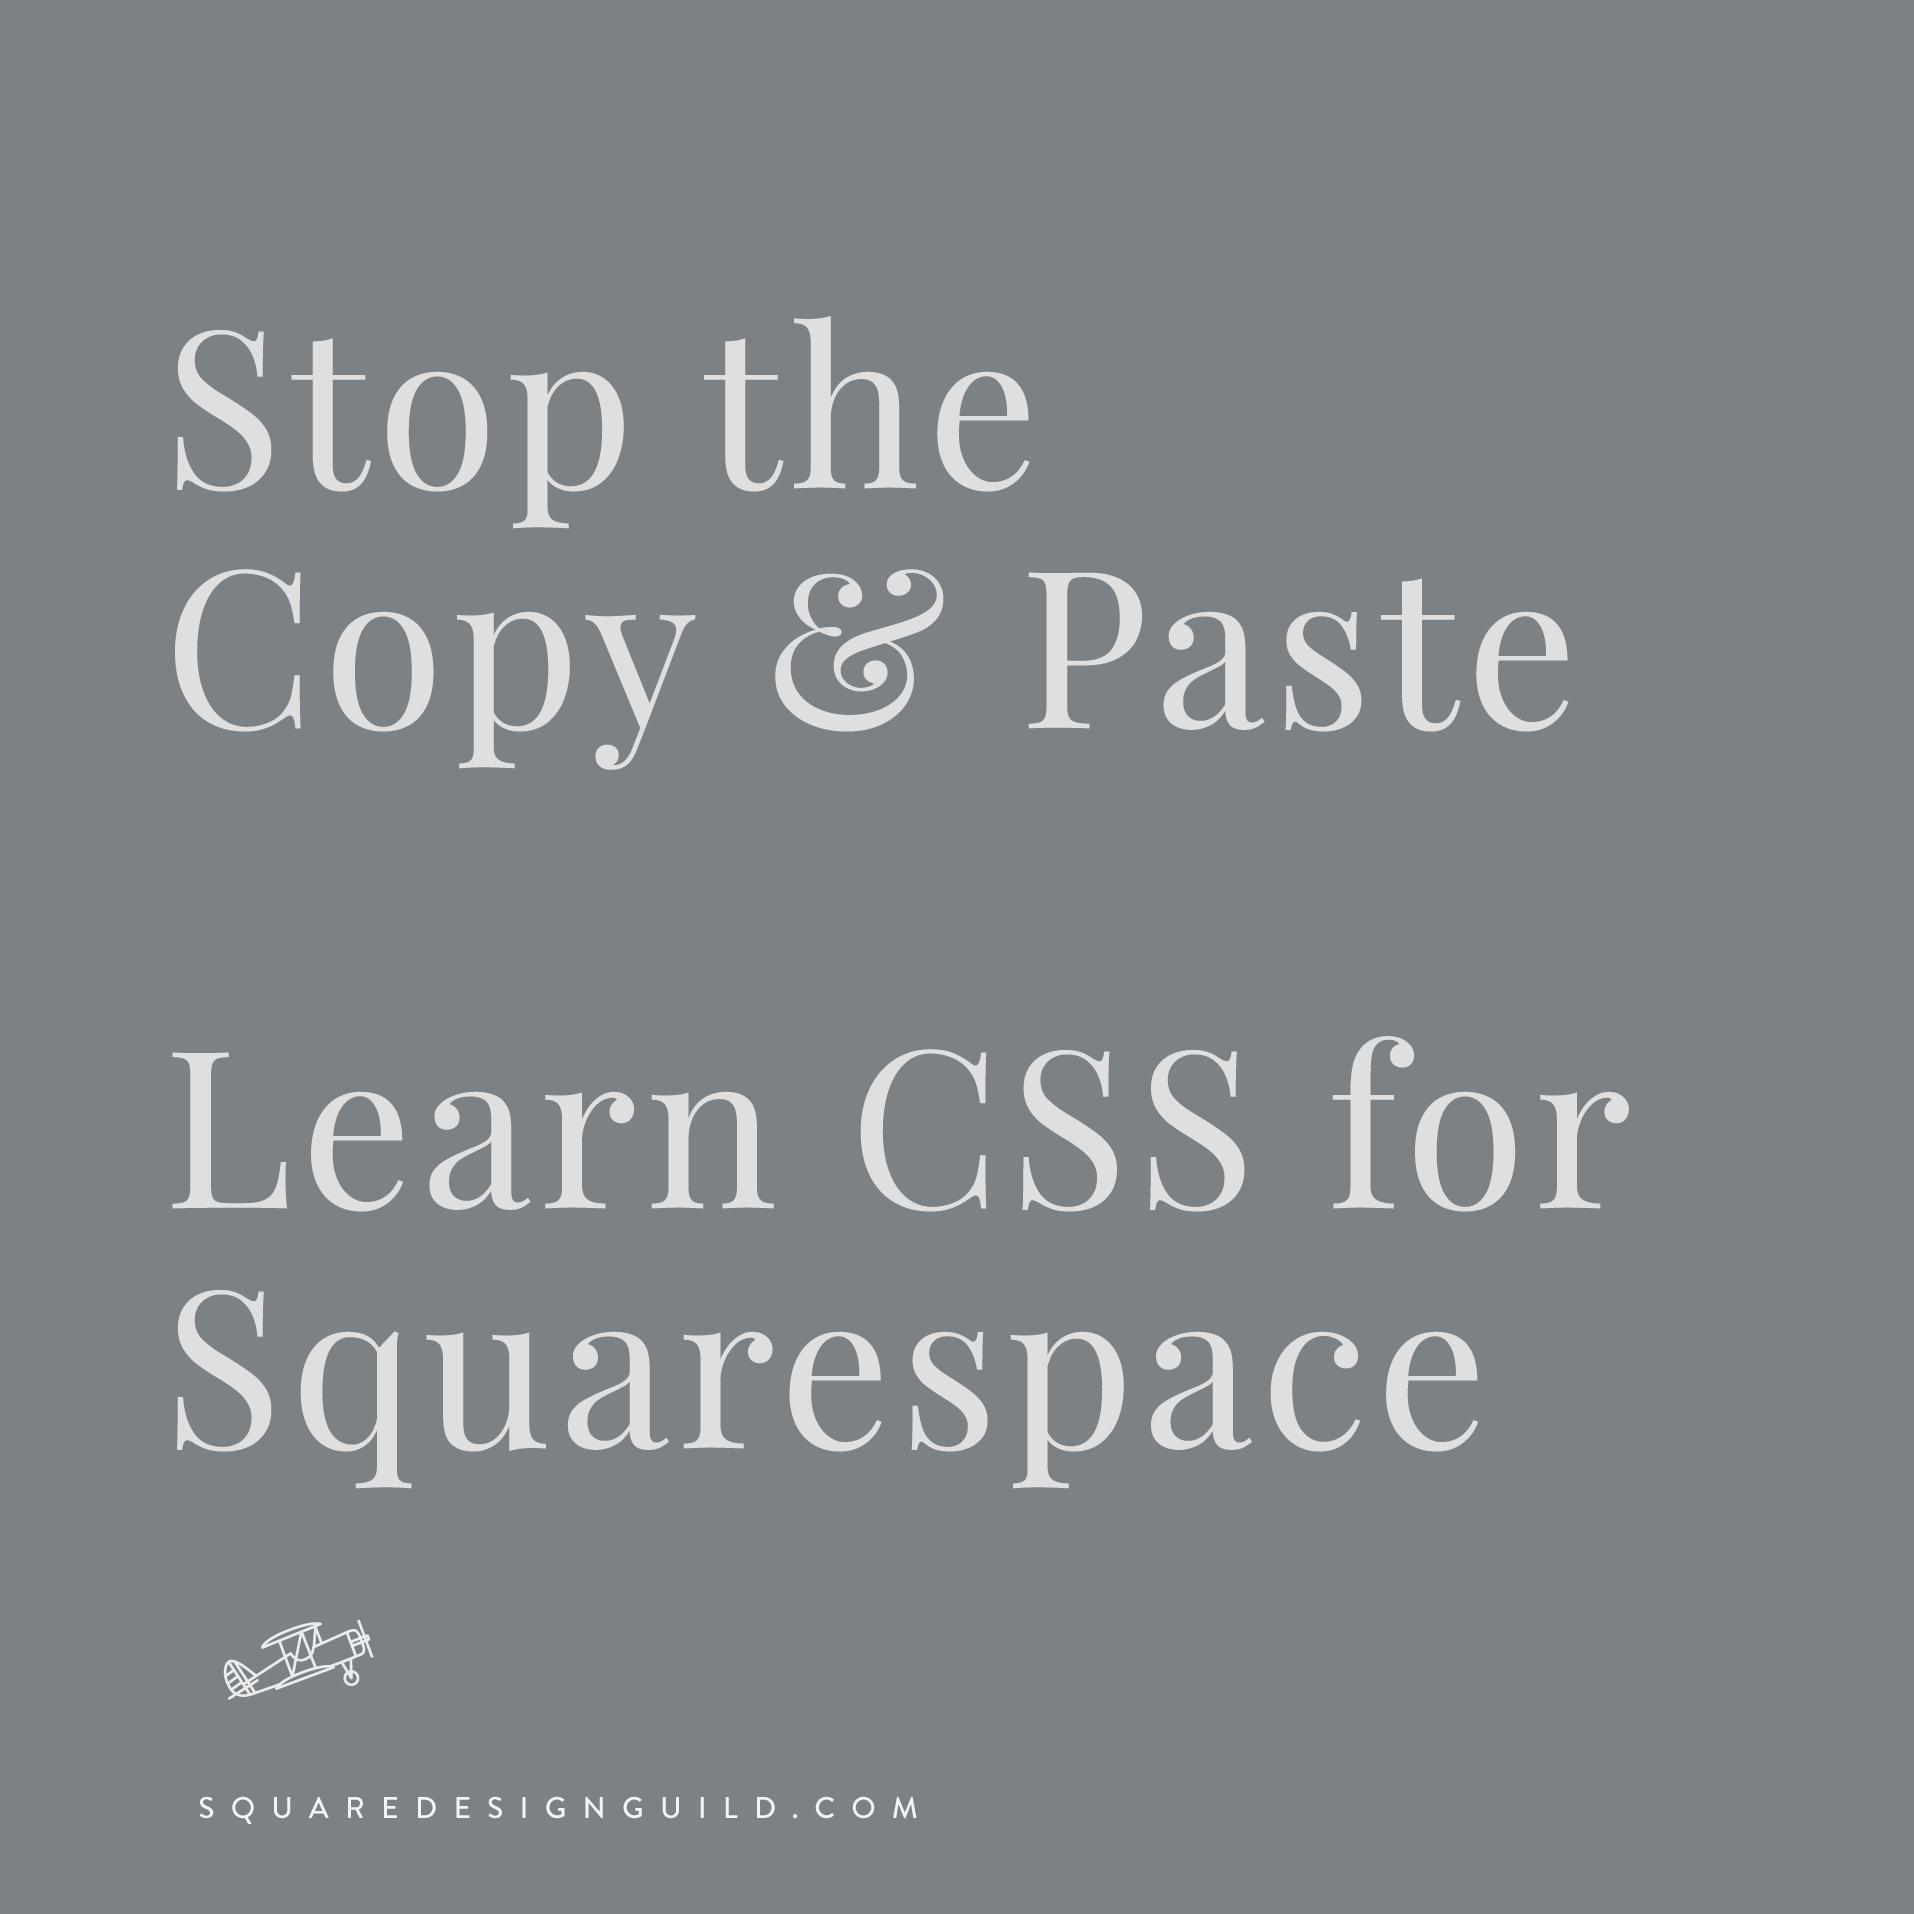 Learn CSS for Squarespace | Coding for Squarespace Course on Teachable